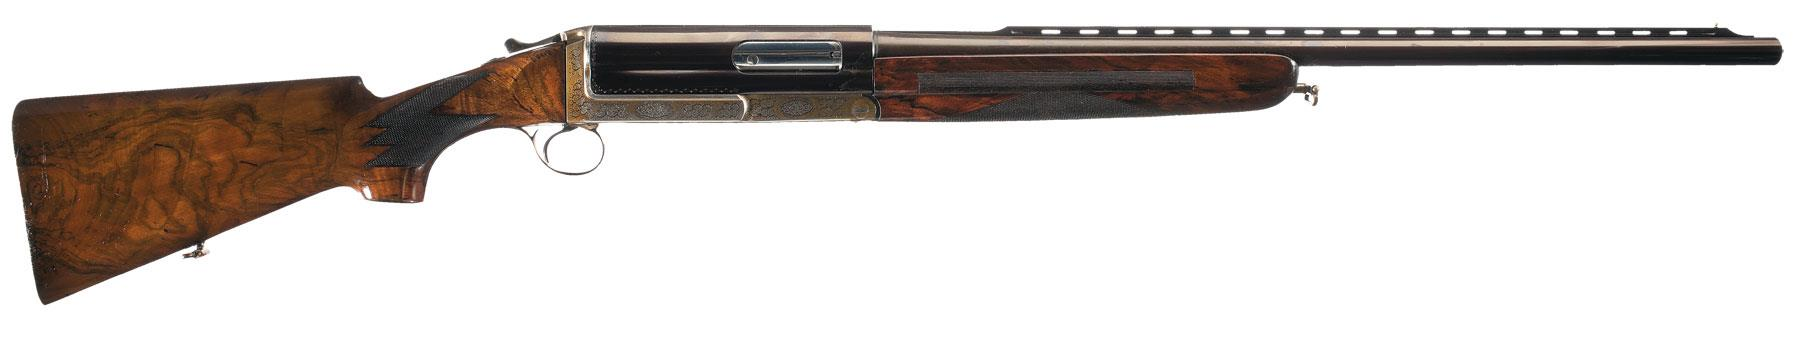 Cosmi semi automatic shotgun